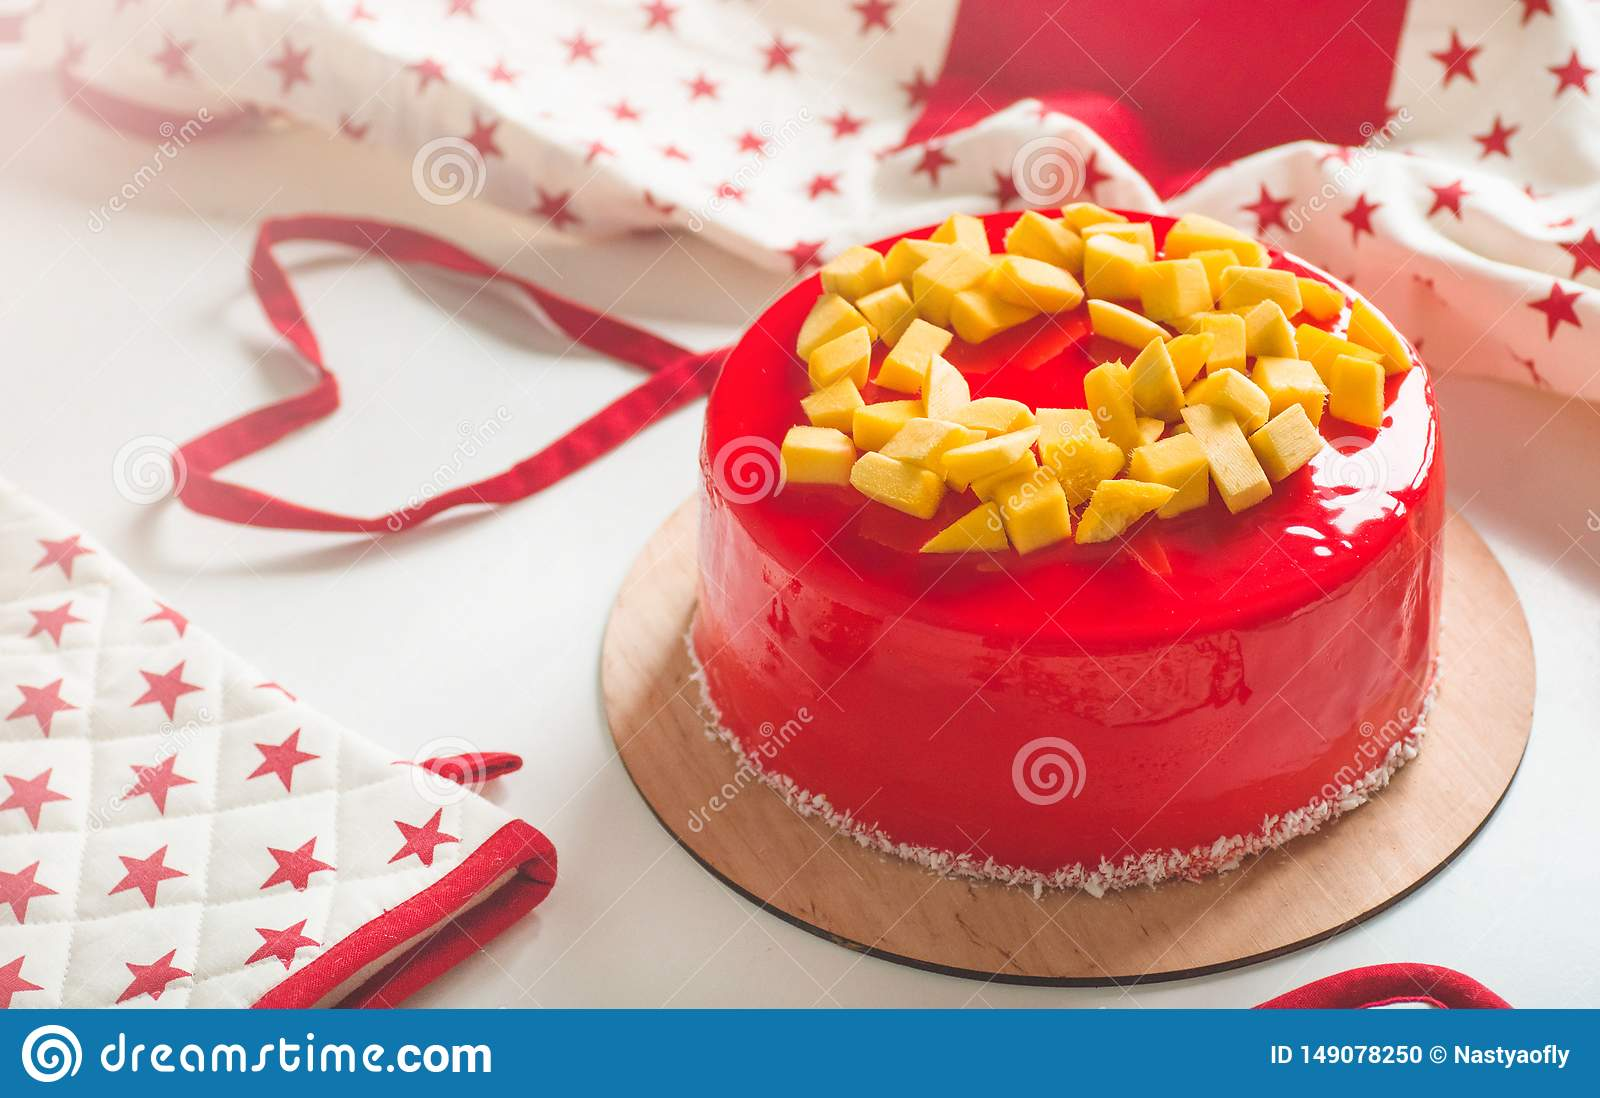 Swell Birthday Cake With One Candle And Red Frosting National Bakery Funny Birthday Cards Online Fluifree Goldxyz